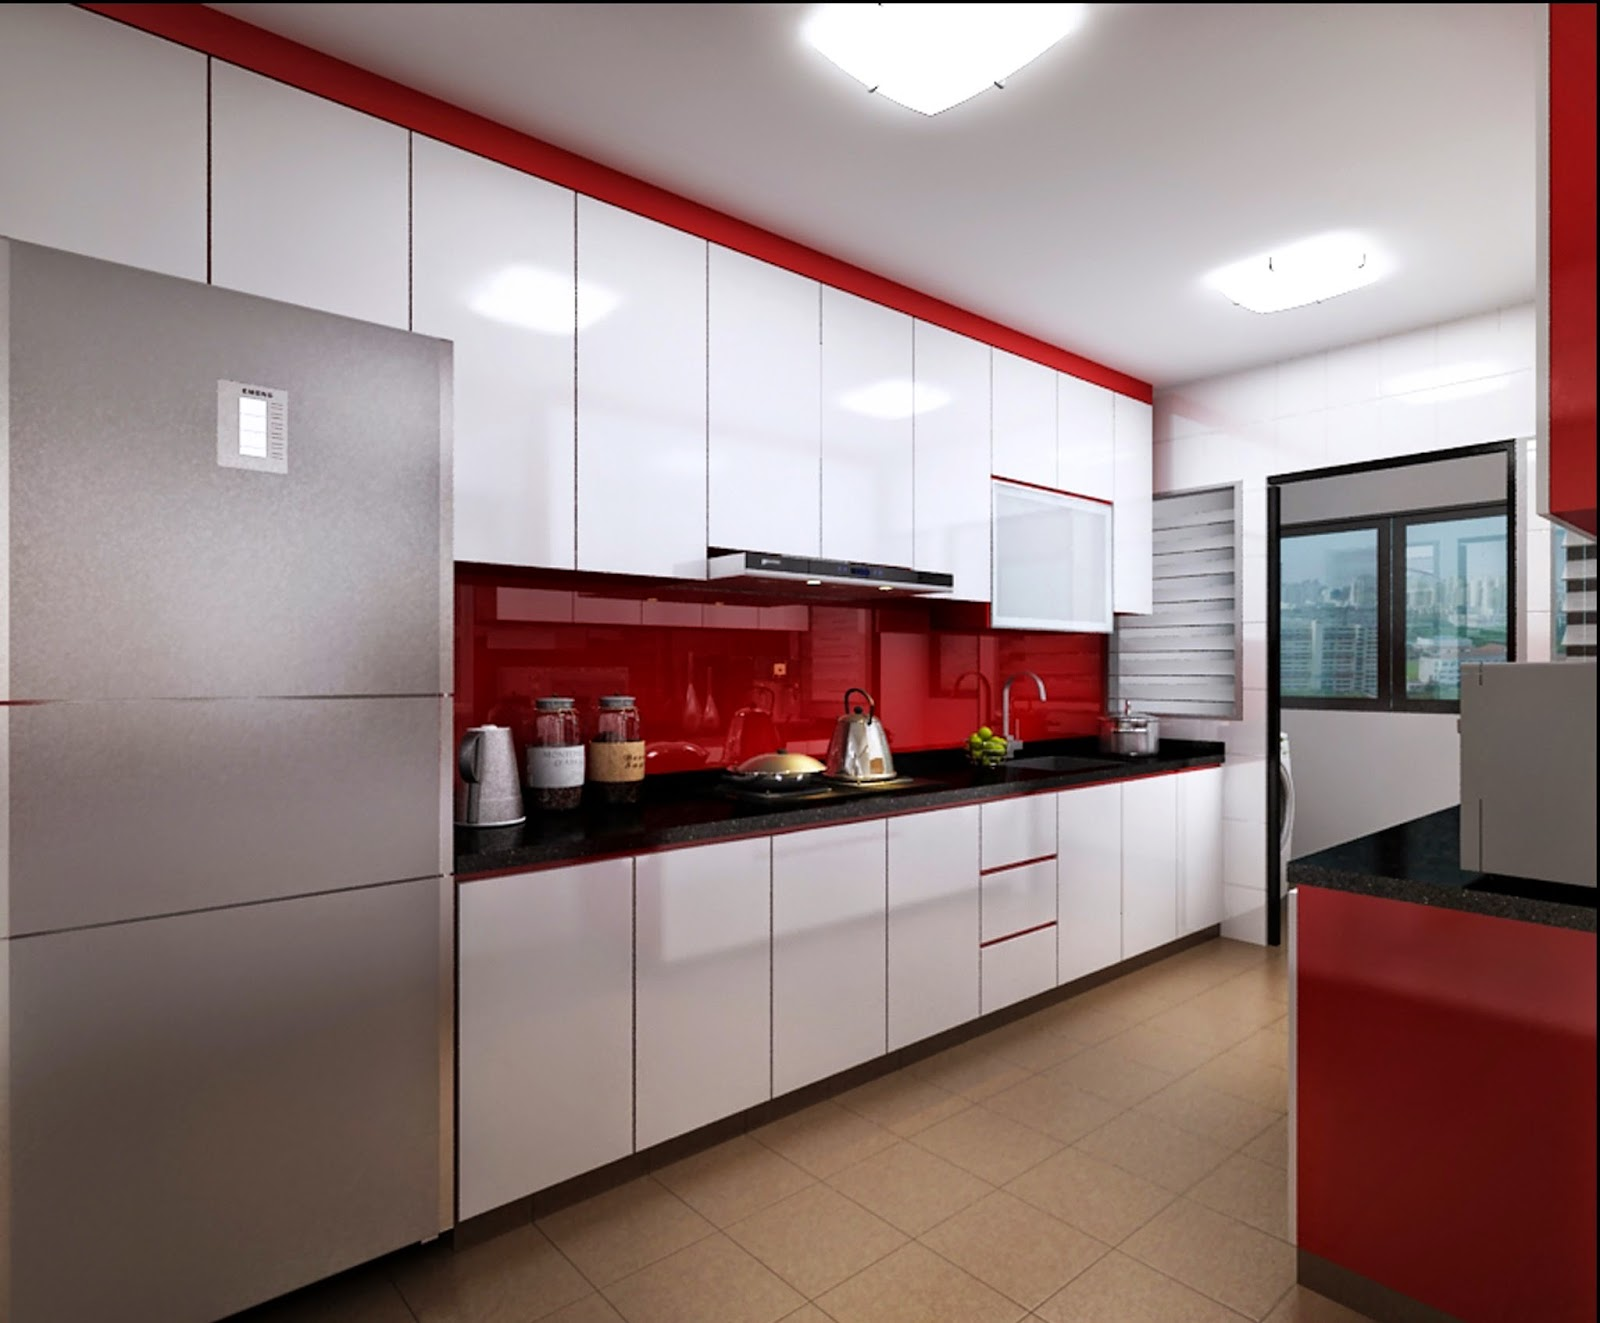 Jim lim interior design hdb bto 5 room premium for Kitchen ideas hdb